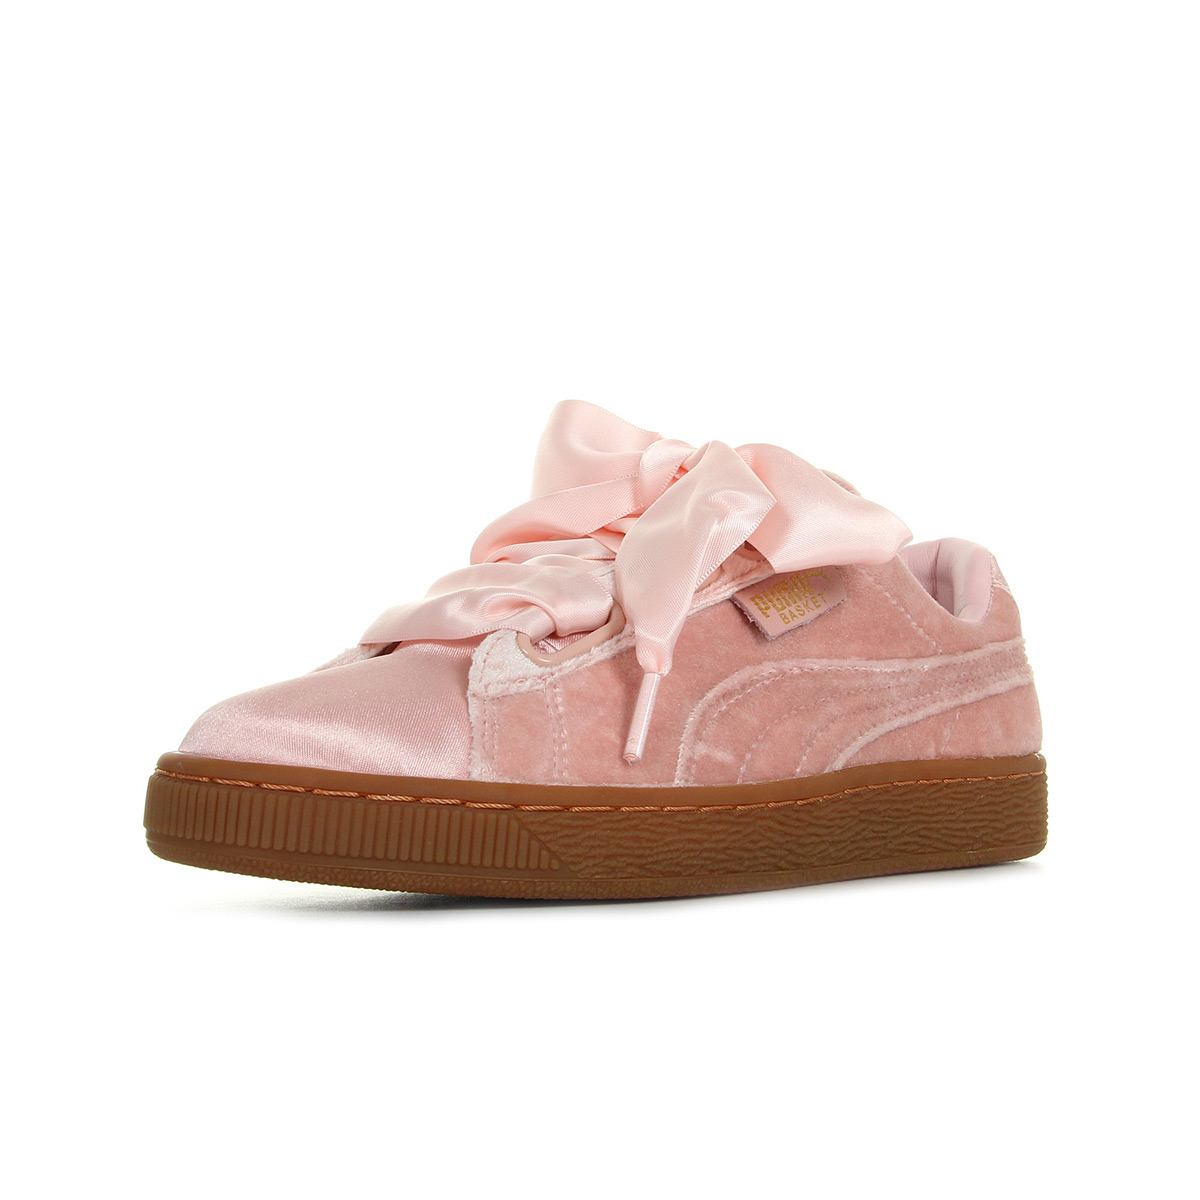 puma chaussures femmes rose velours